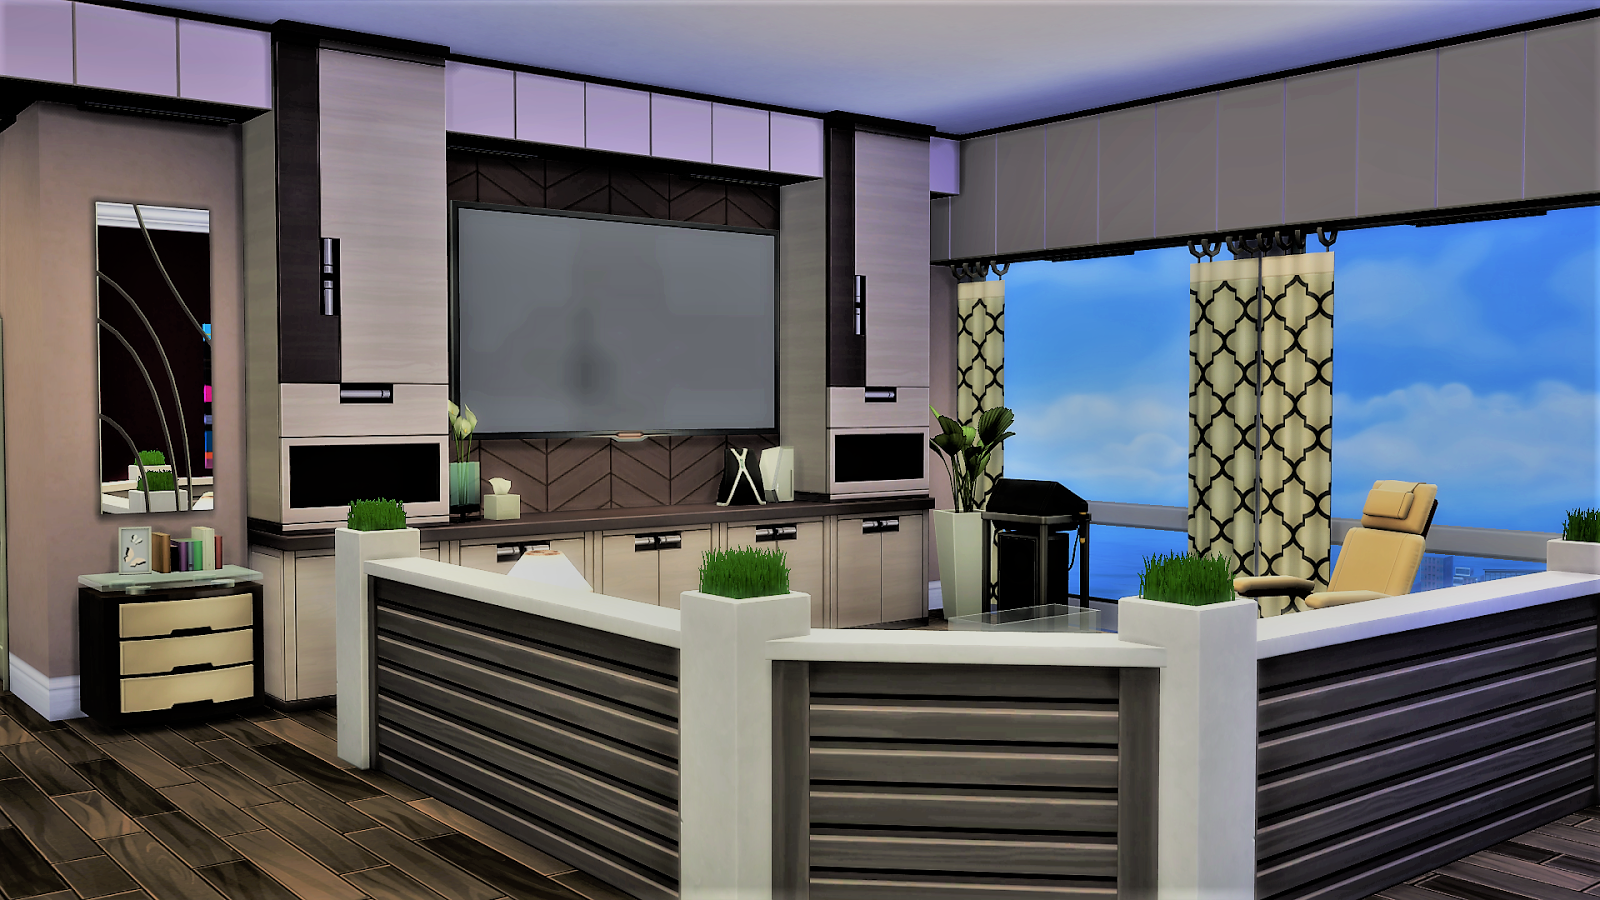 Sim house design workshop sims 4 traditional modern for Apartment design simulator